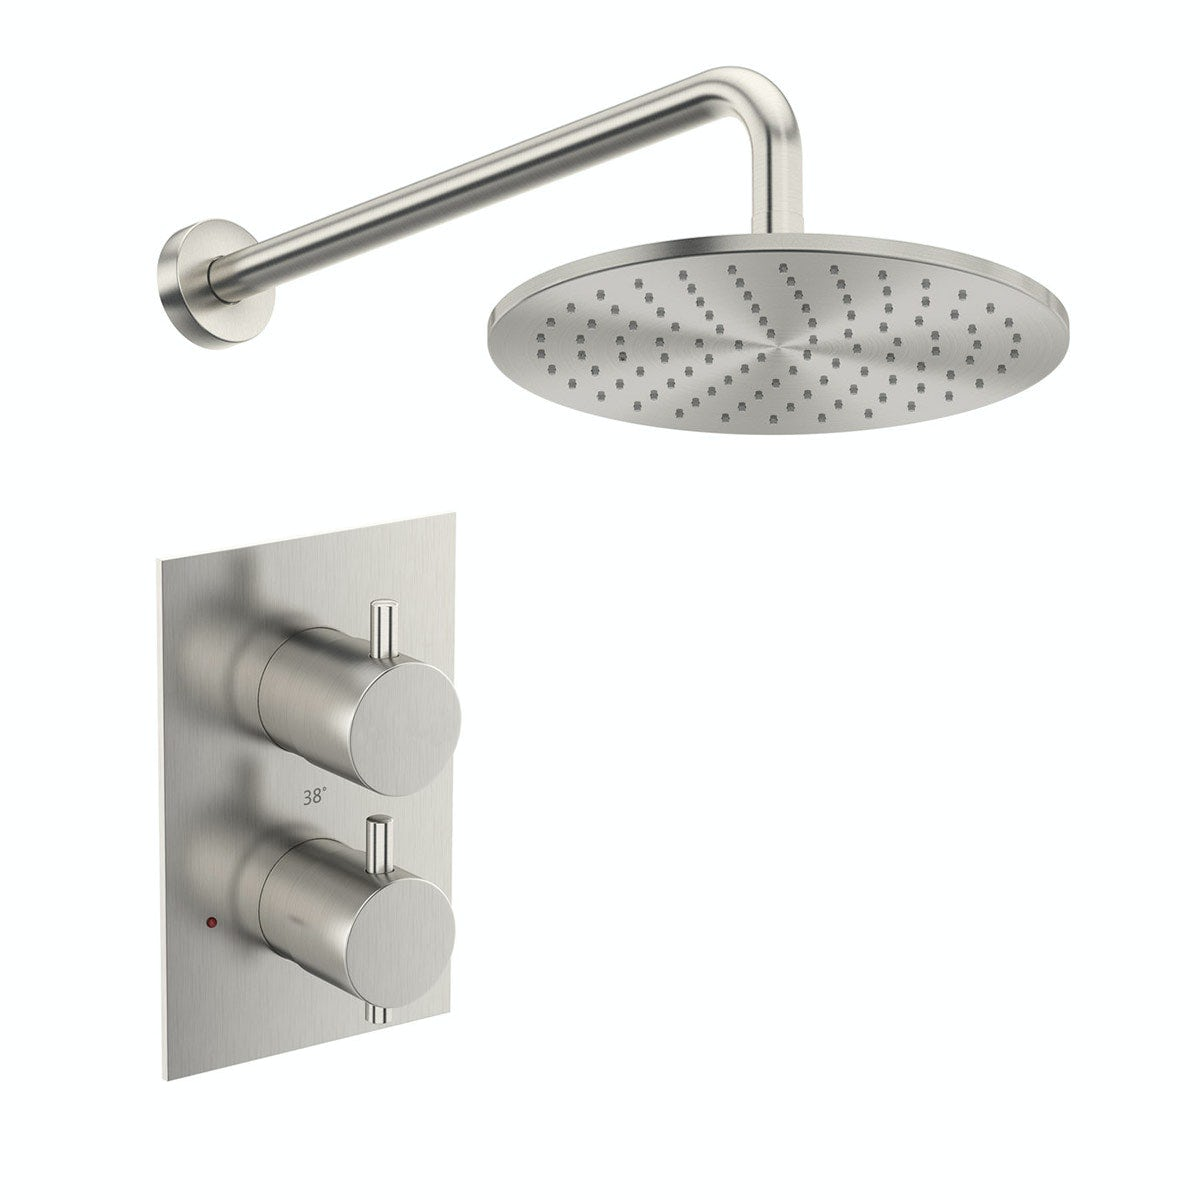 Mode Spencer square round thermostatic twin valve brushed nickel shower set - 250 mm- 0.5 BAR - Sold by Victoria Plum